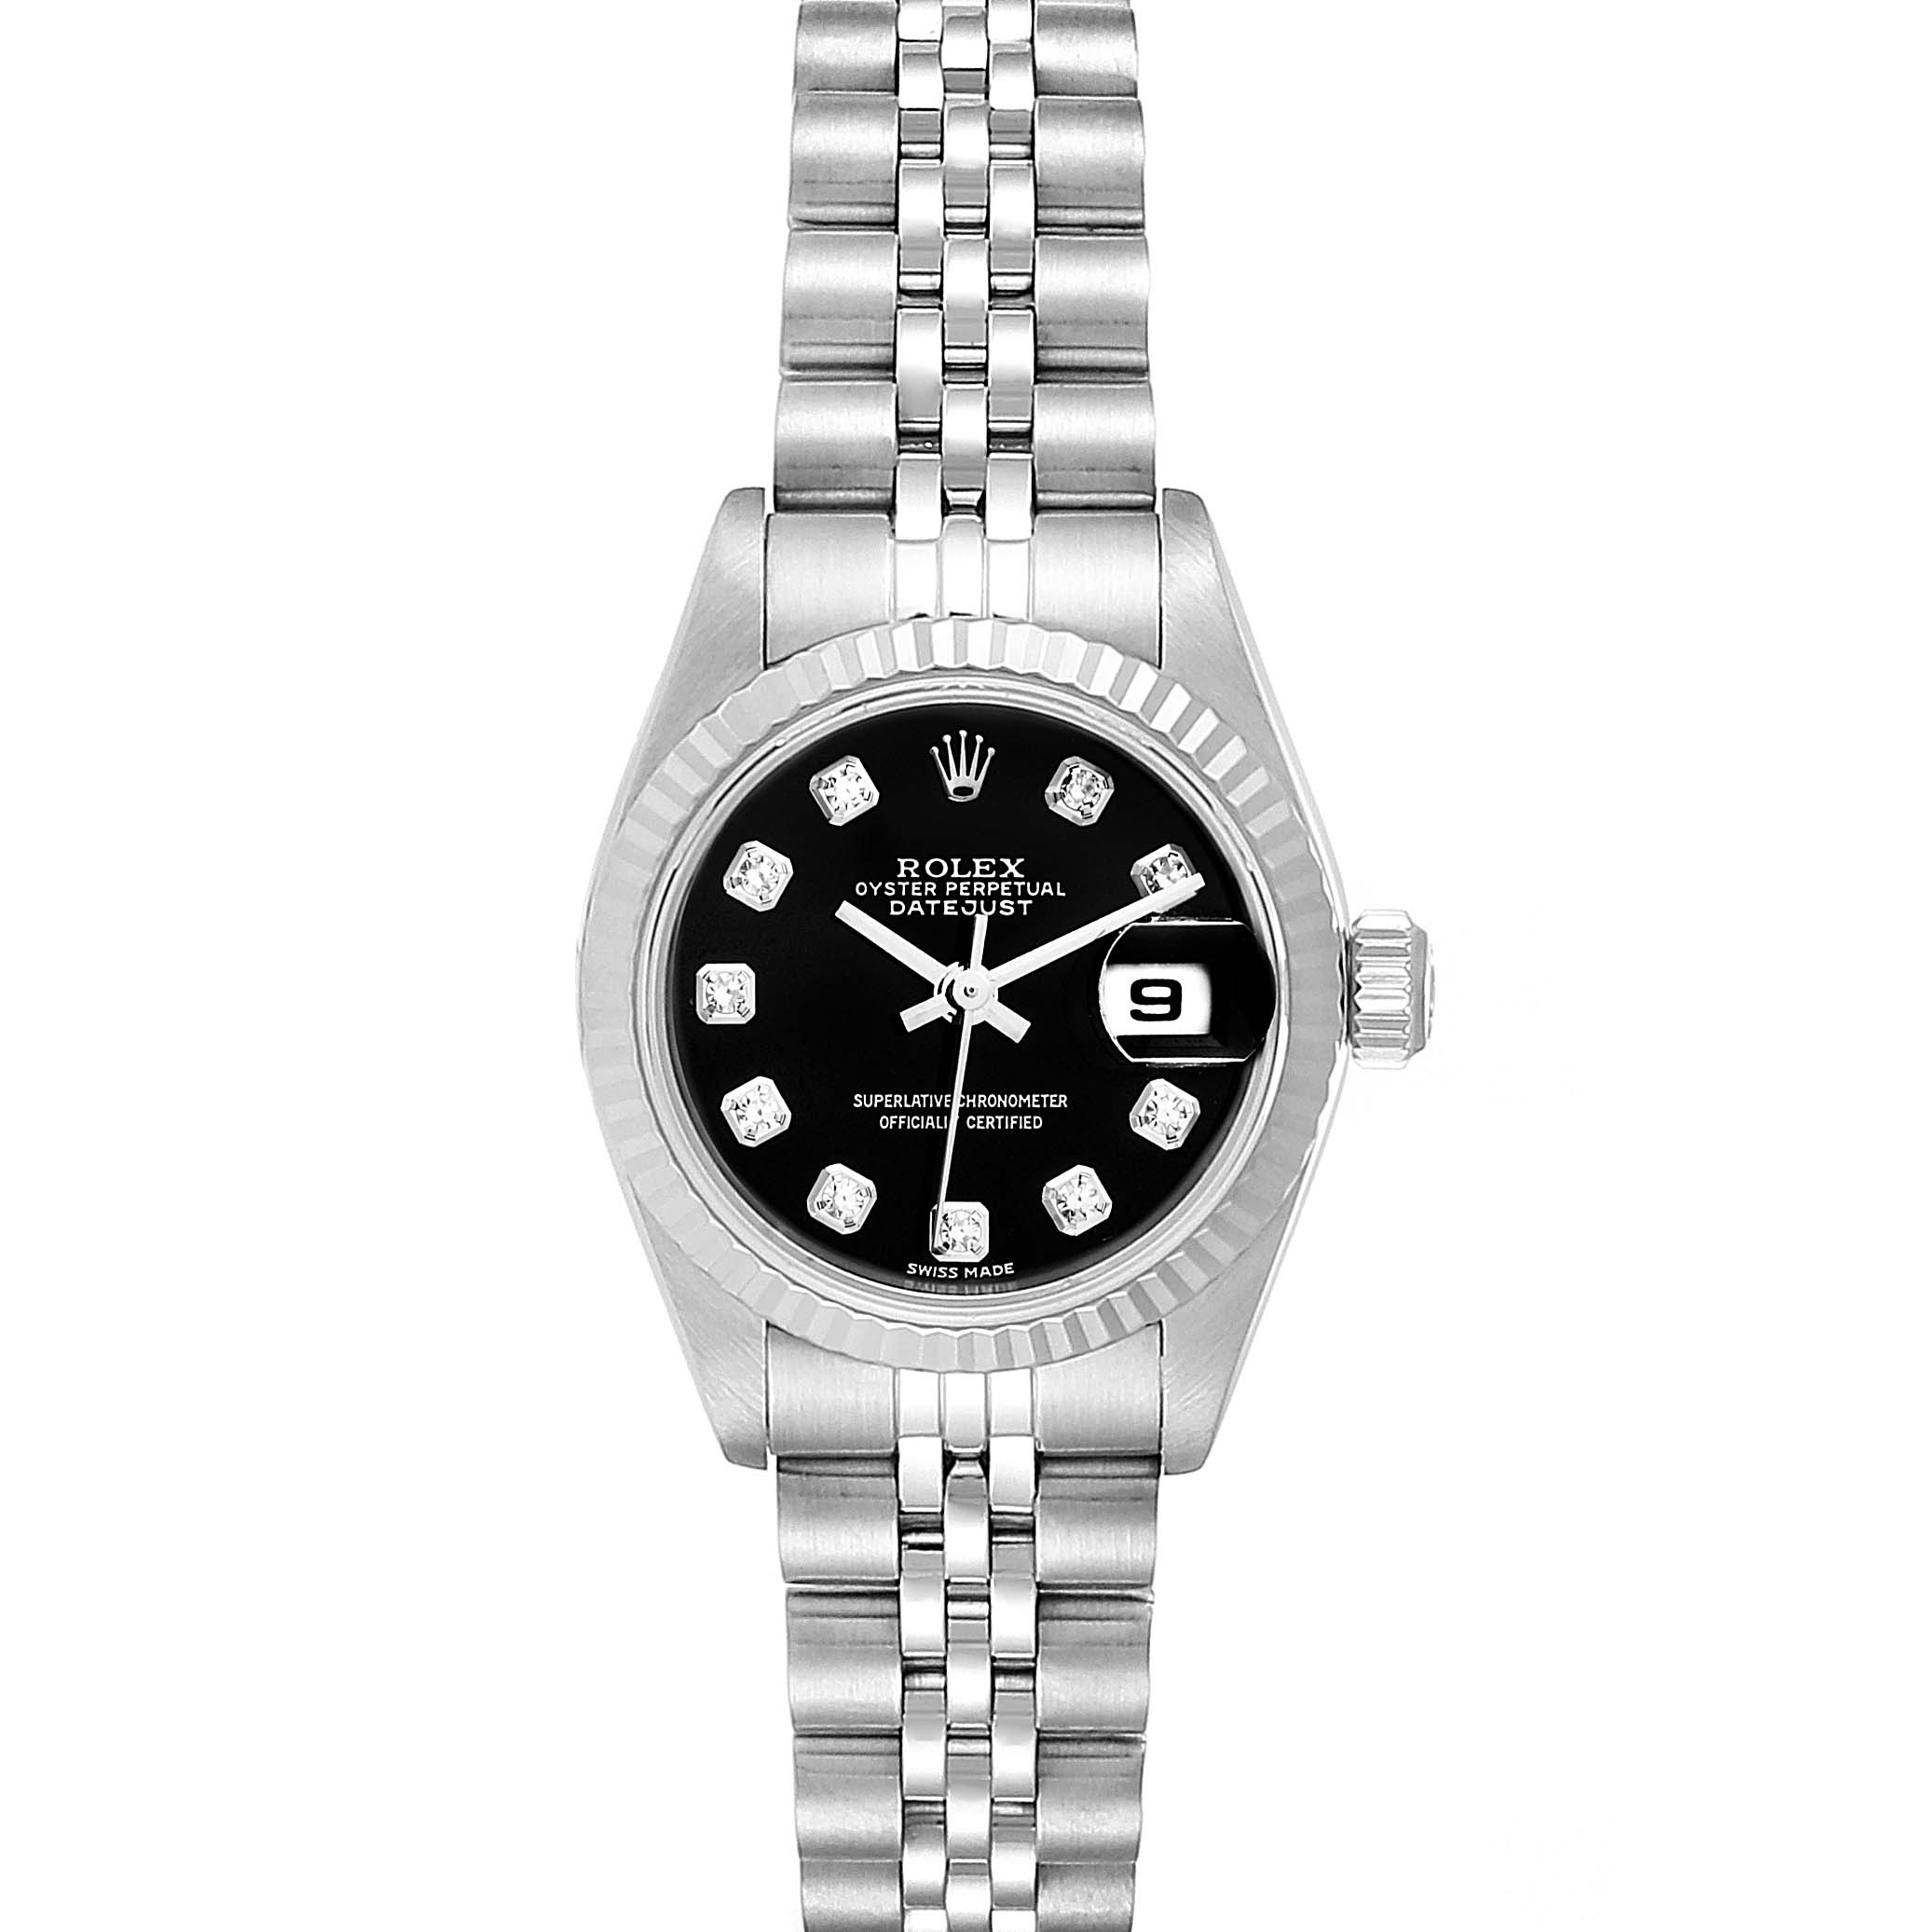 Rolex Datejust Steel White Gold Black Diamond Dial Ladies Watch 79174